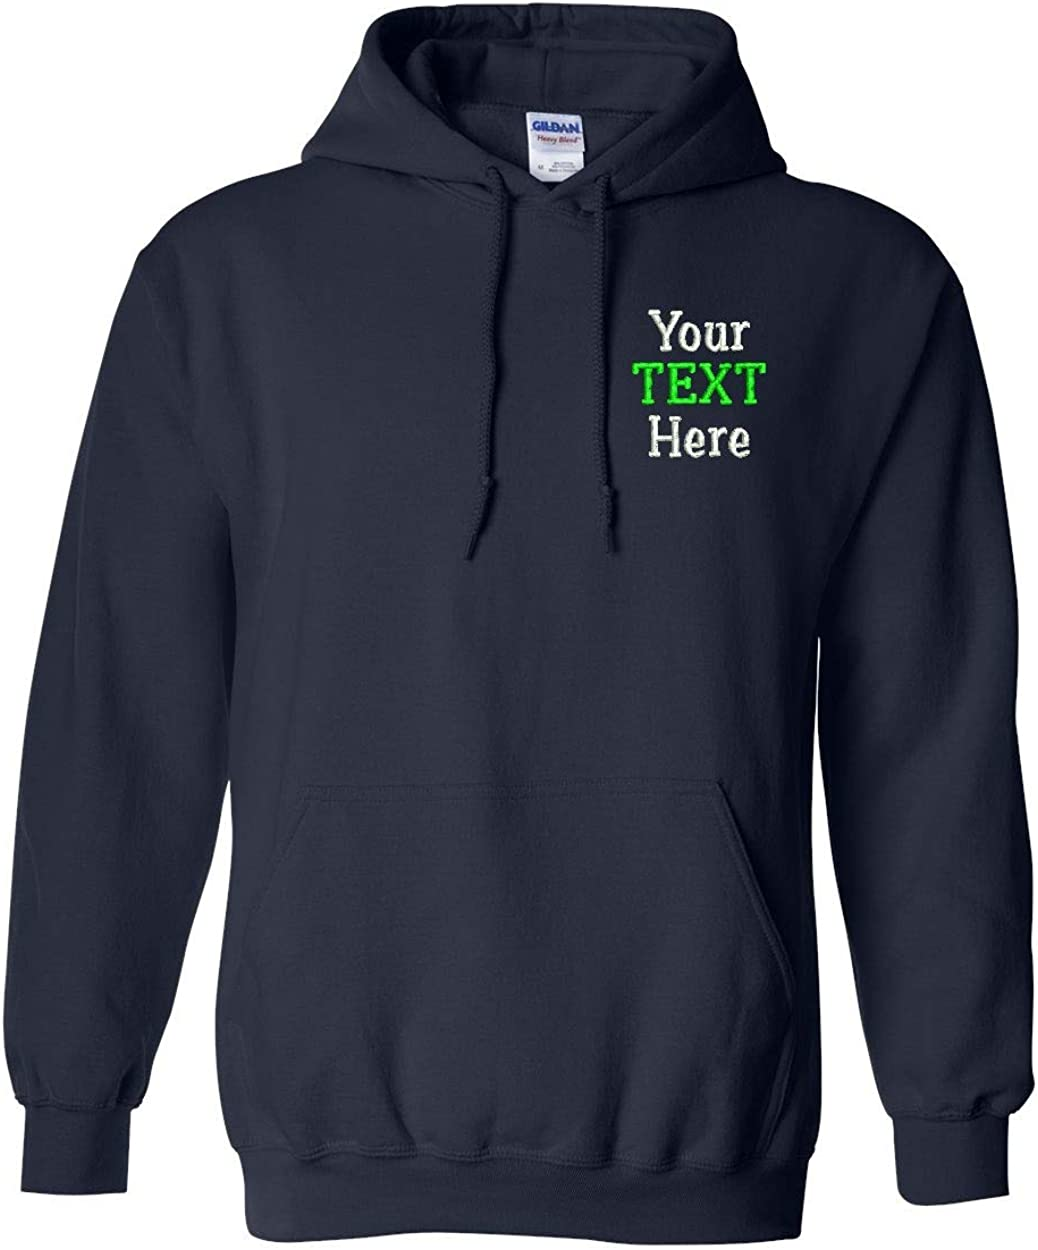 Personalised Embroidered Sweatshirt Jumper Your logo or text